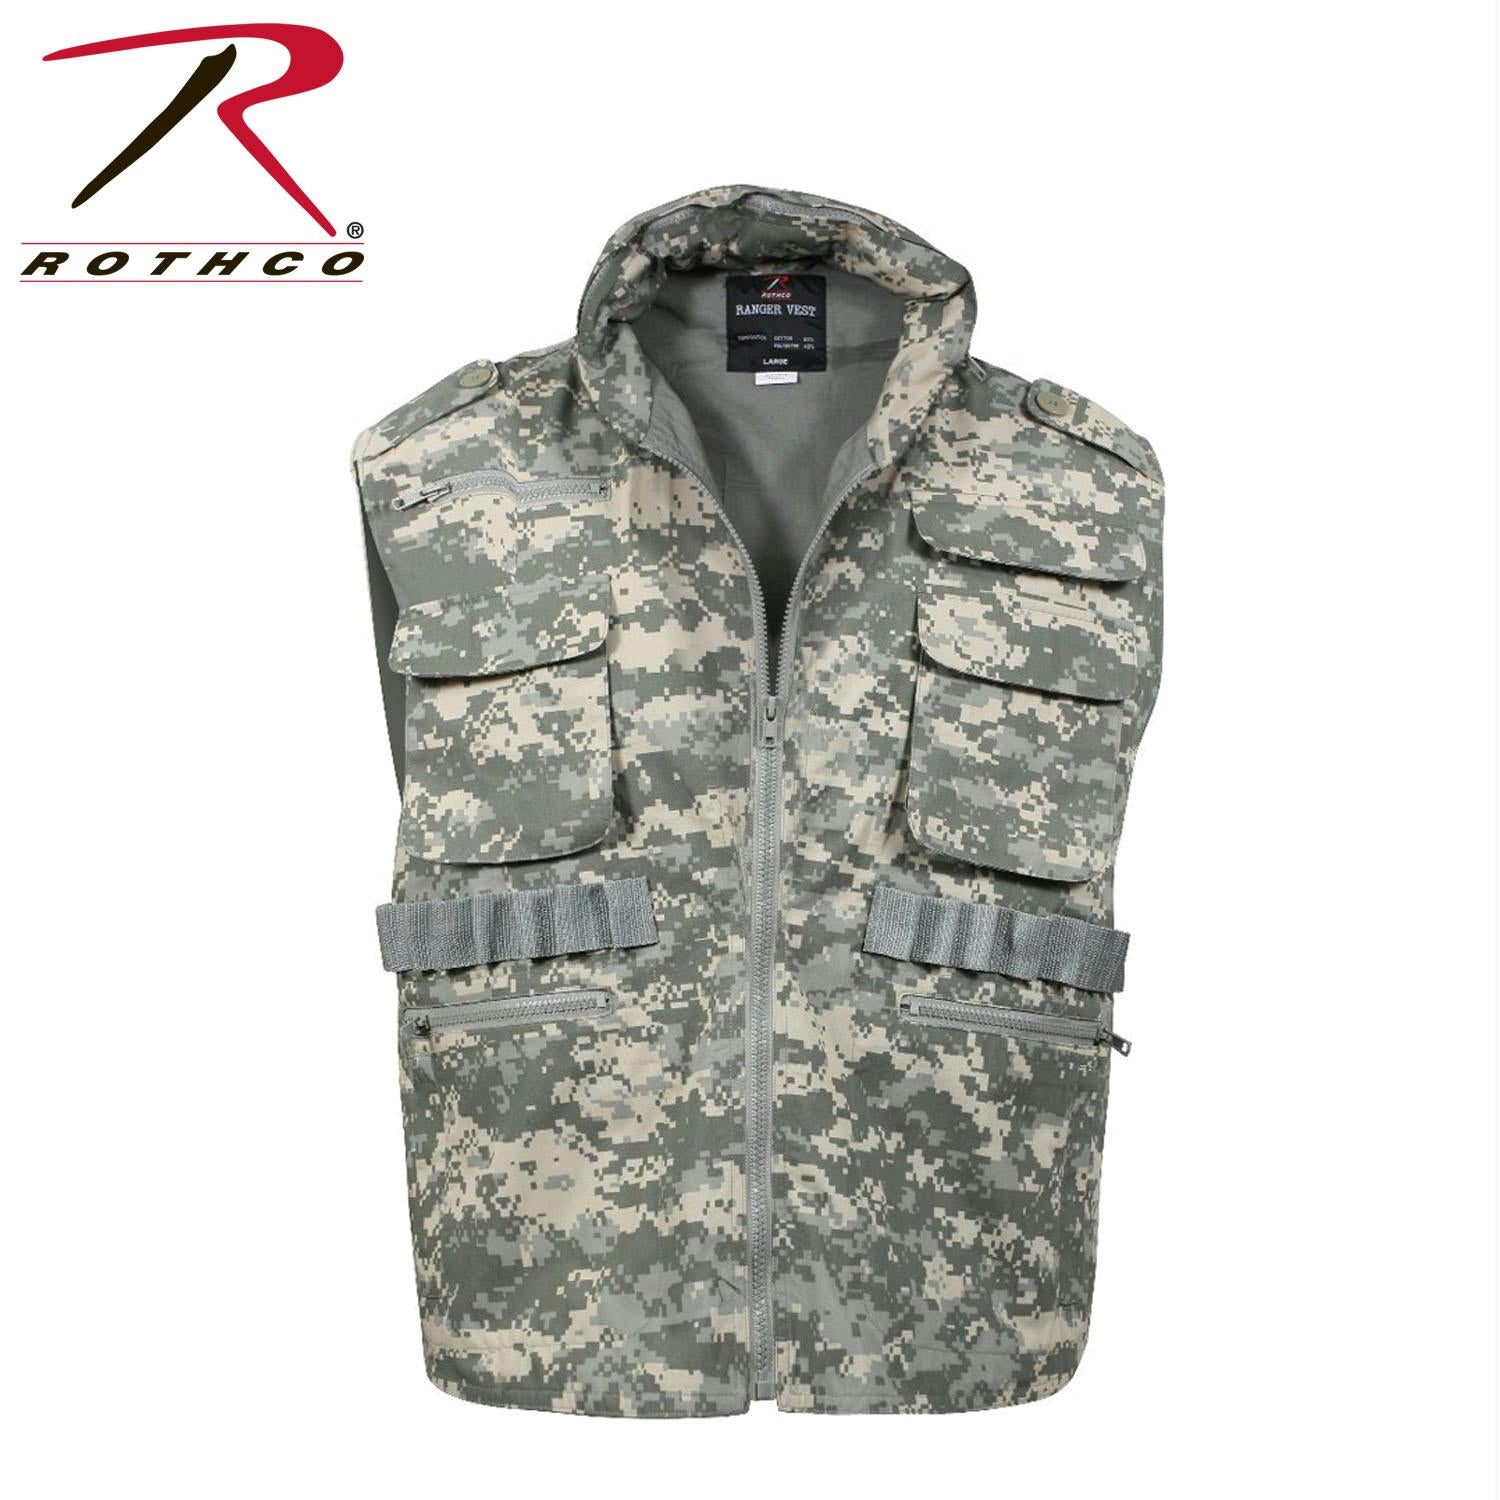 Rothco Ranger Vests - ACU Digital Camo / 2XL